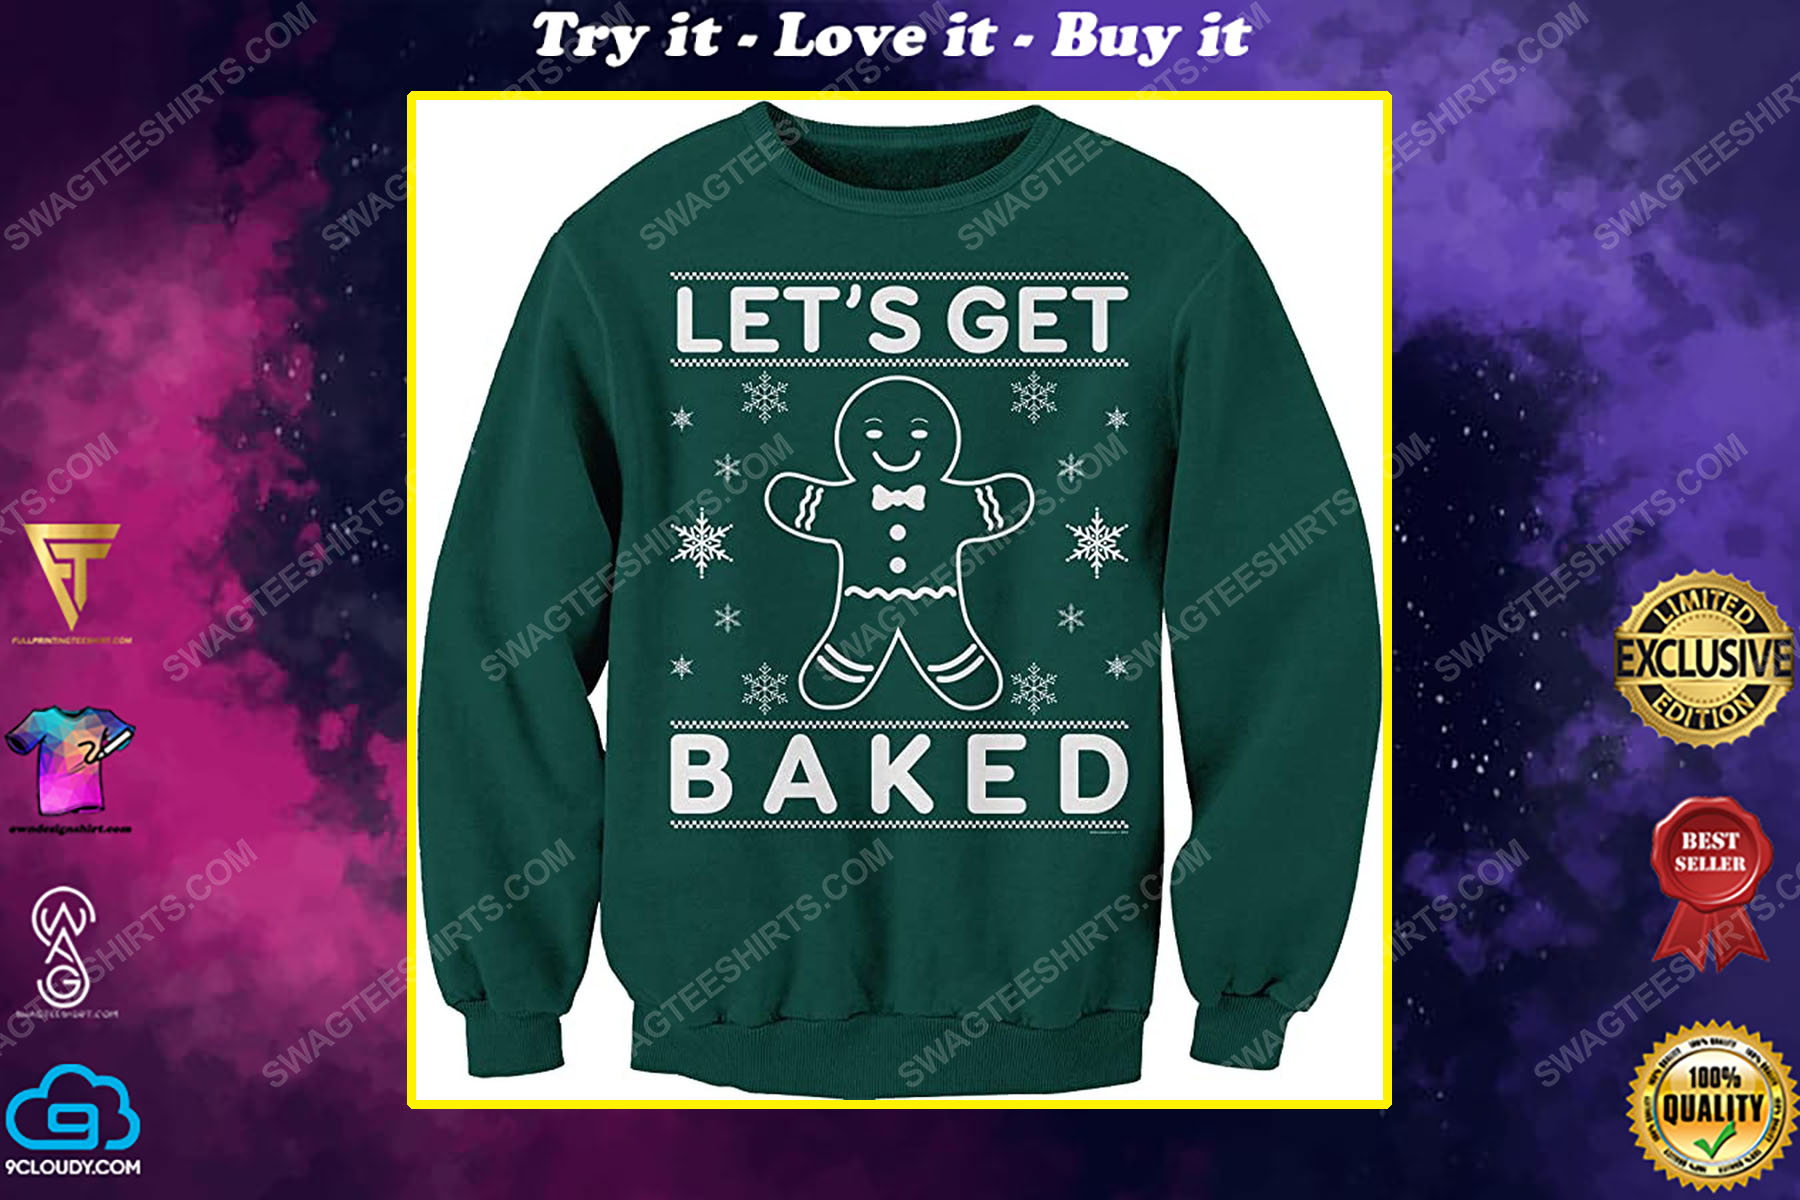 Let's get baked happy gingerbread full print ugly christmas sweater